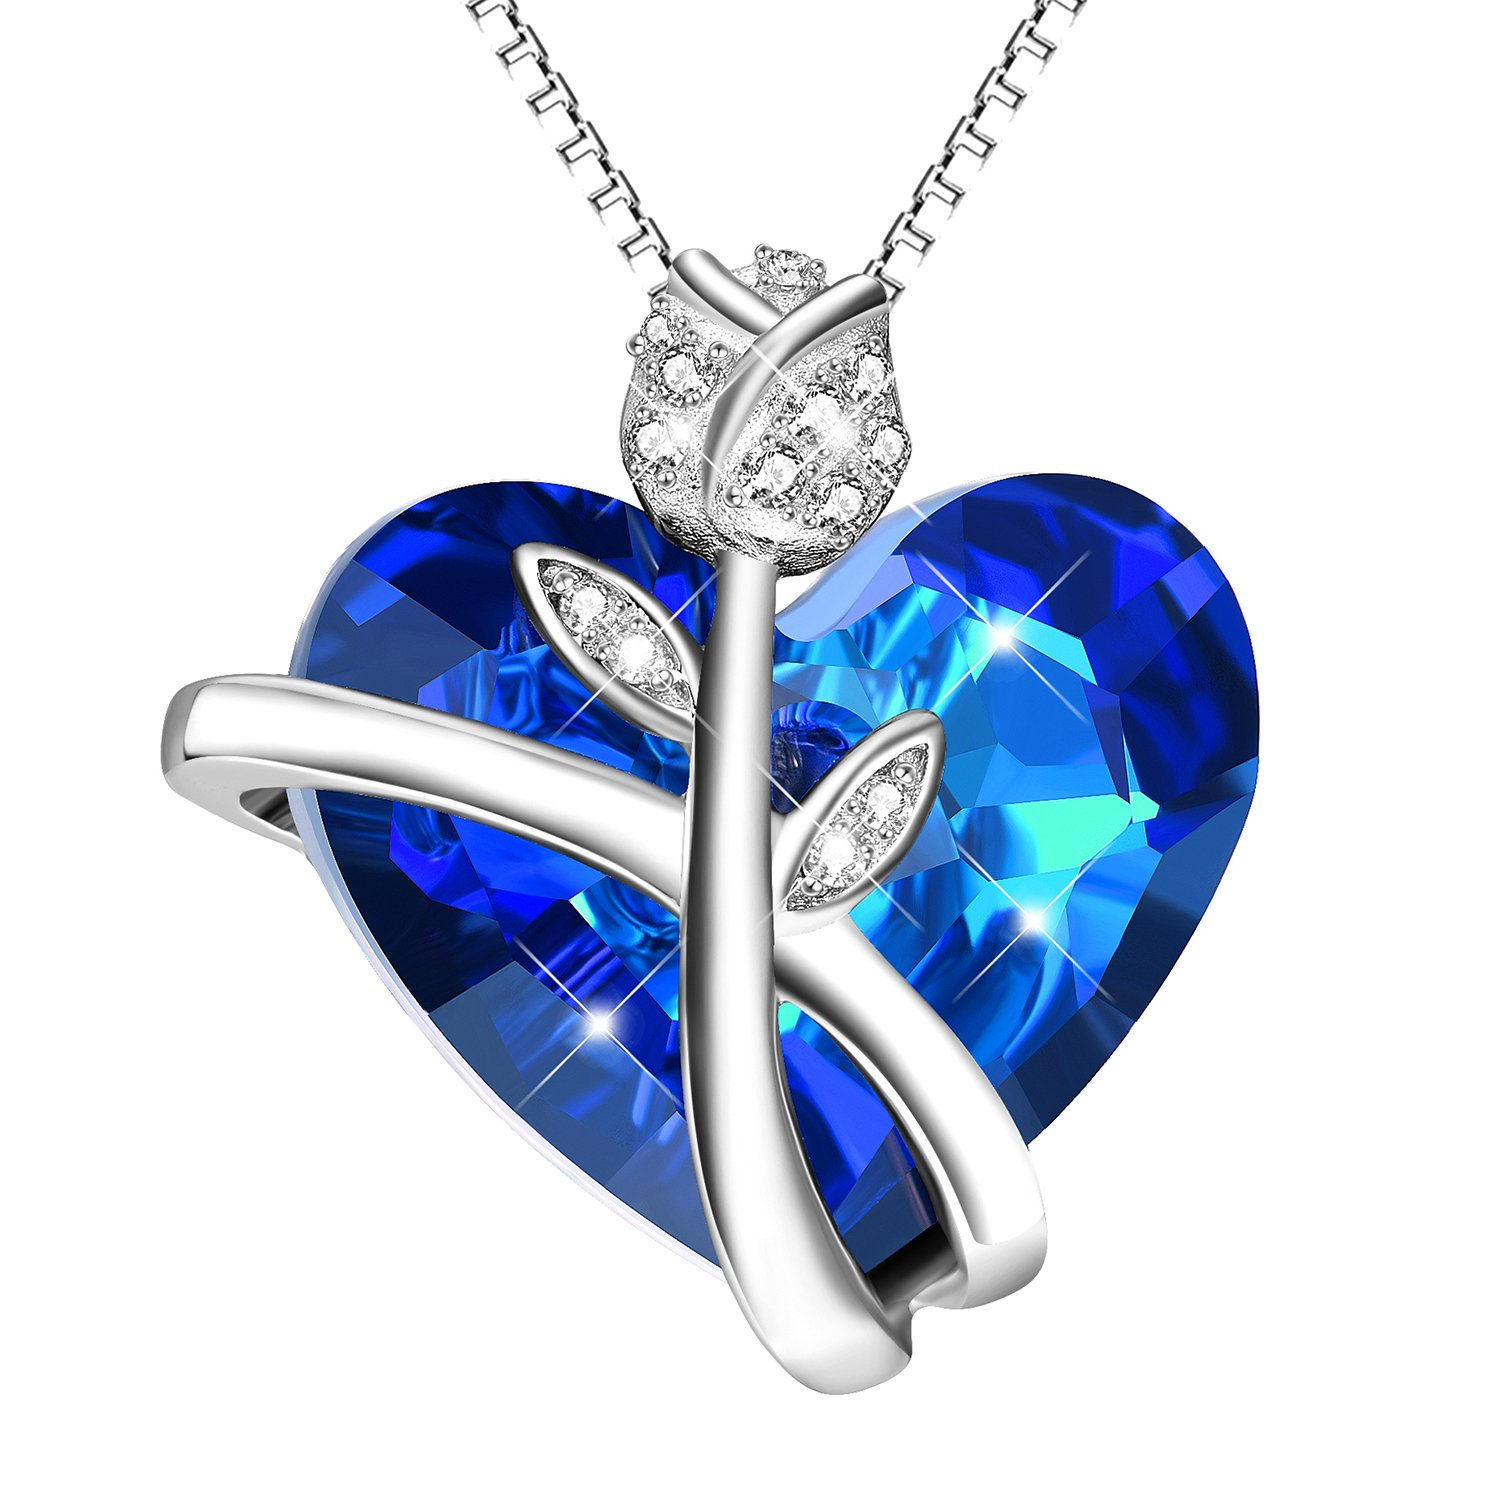 AOBOCO Sterling Silver Heart Necklaces for Women Blue Swarovski Crystals Rose-Flower Jewelry Anniversary Birthday Gift for Daughter Lover Niece Wife Girlfriend Sister Friend